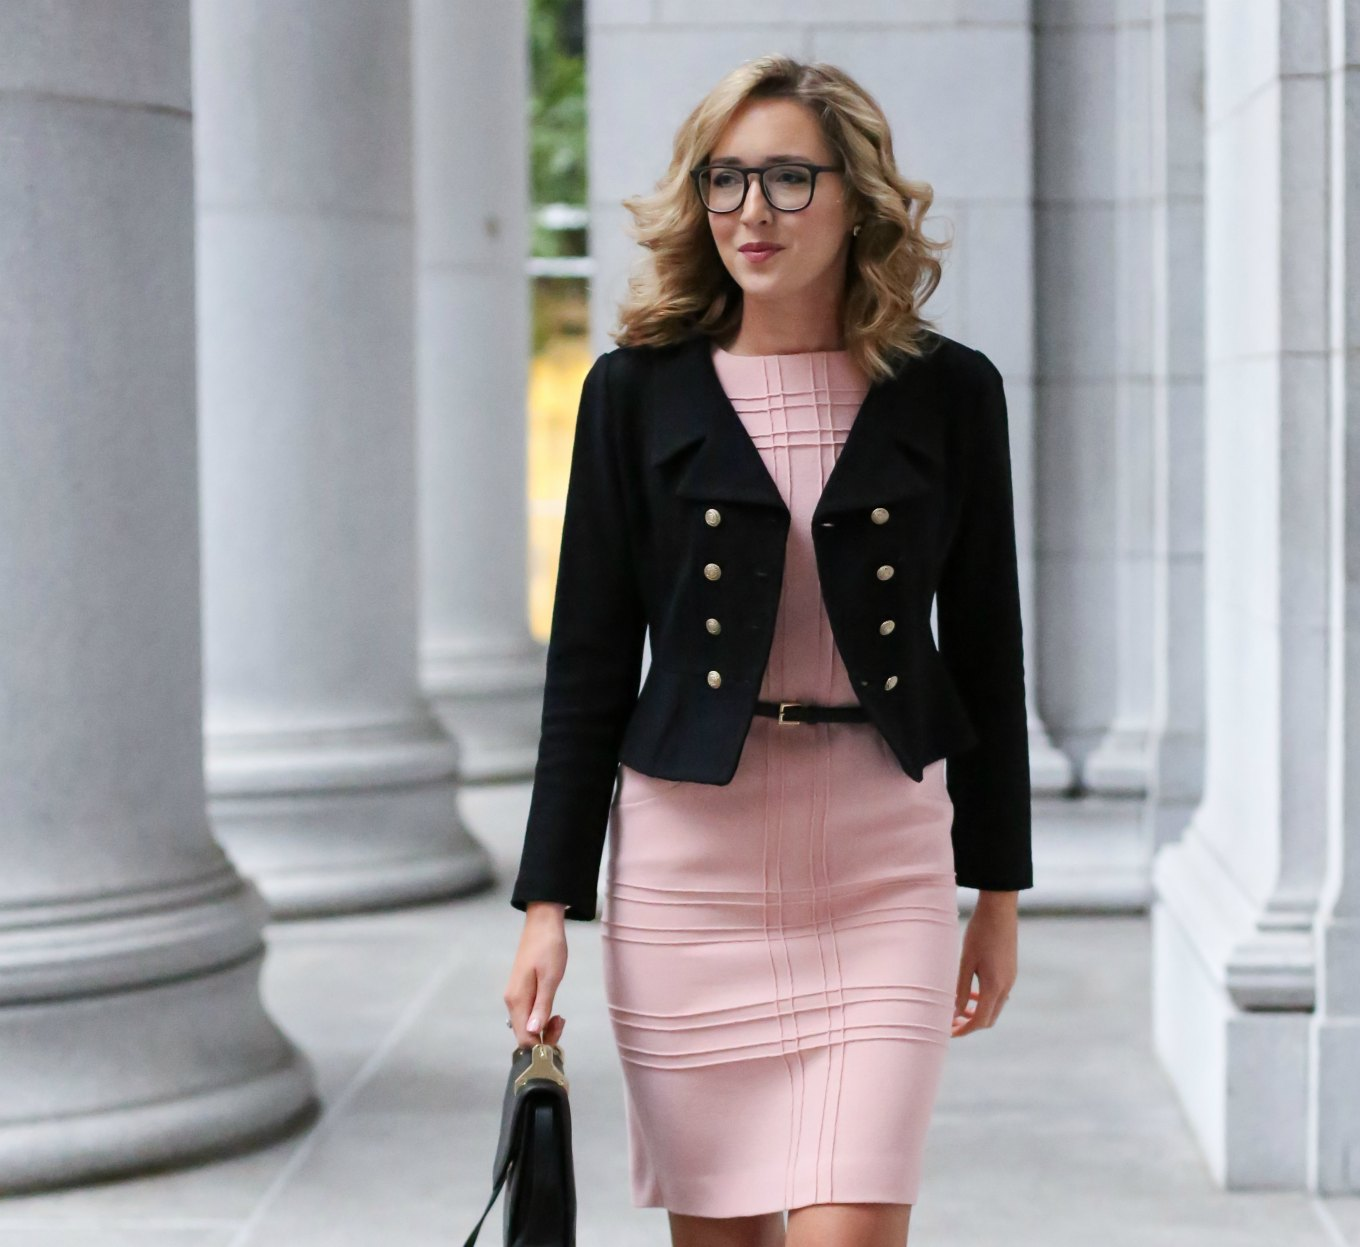 Ways to Dress Business casual dresses for women1.9